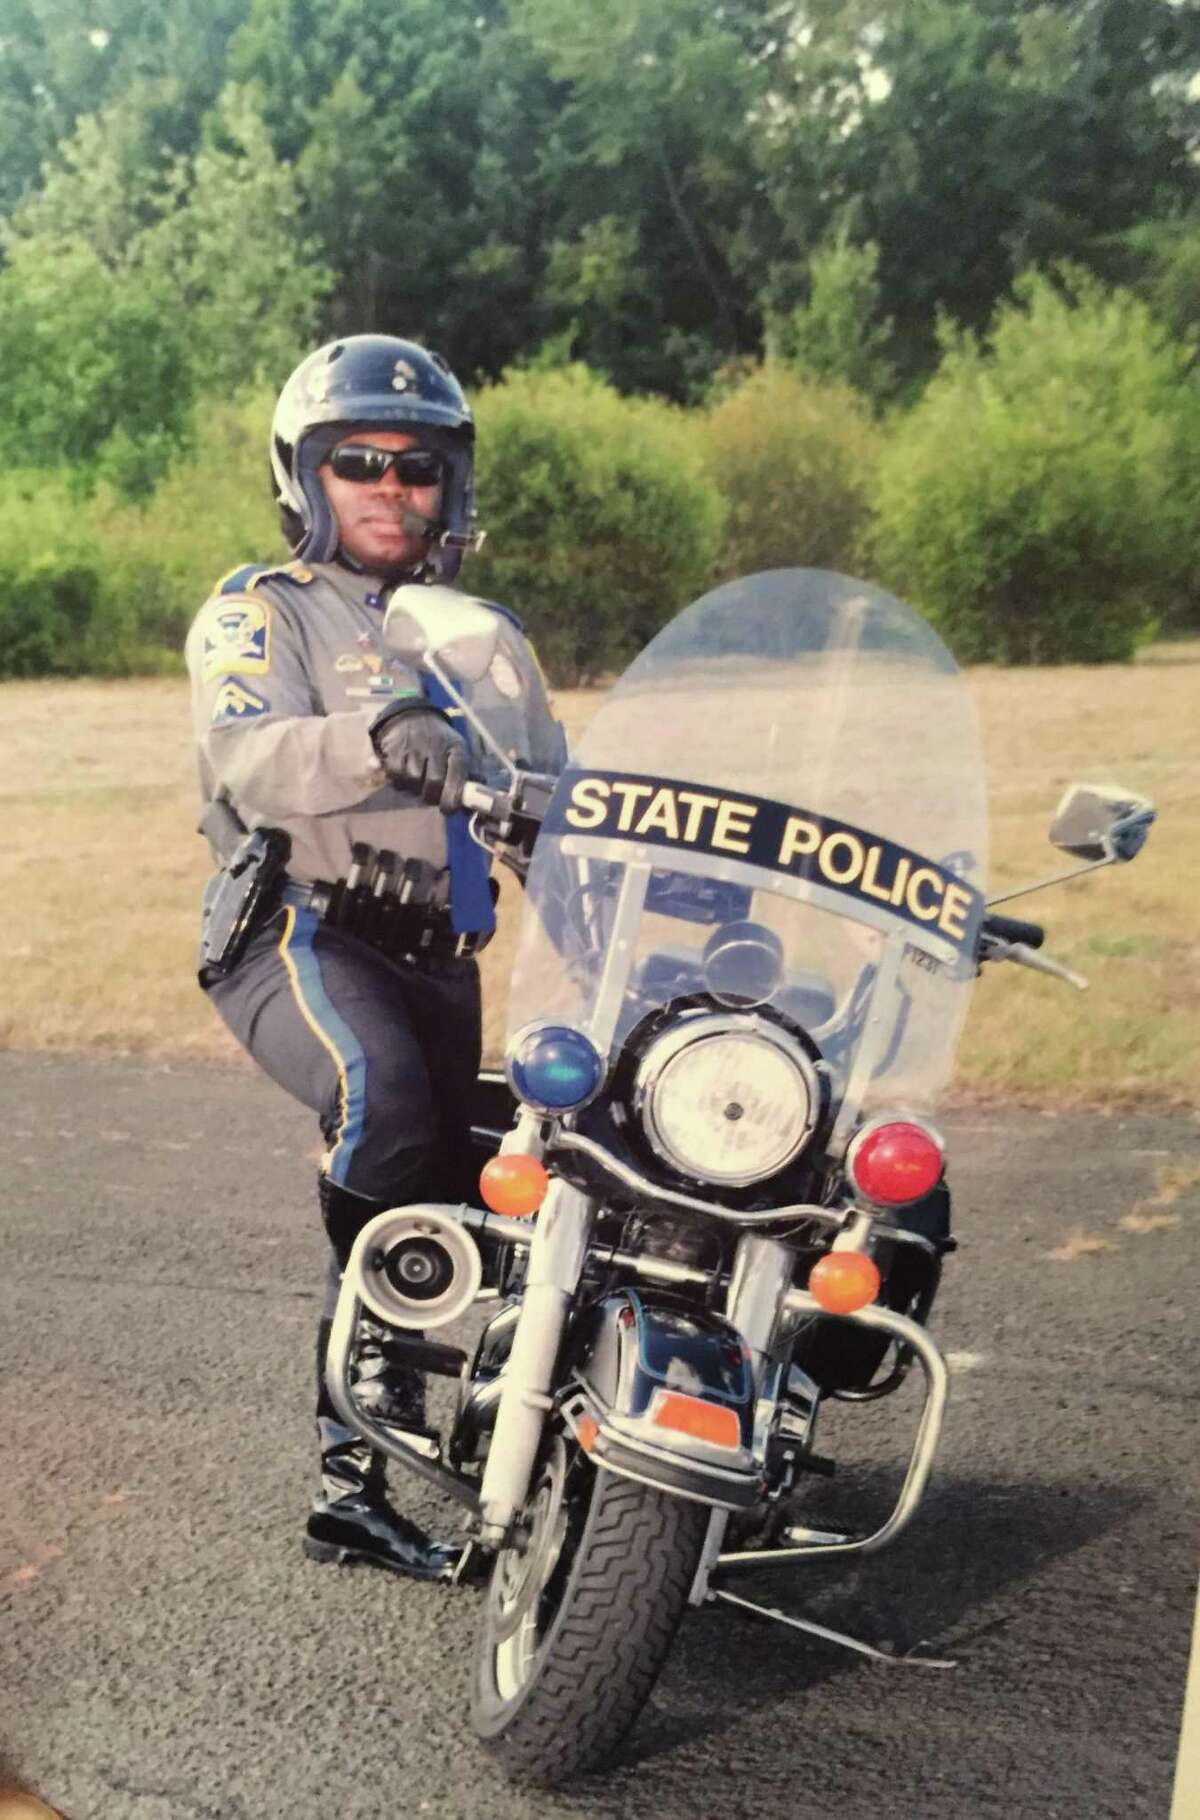 Trooper Walter Greene, Jr., stands next to his state police motorcycle in this updated photo.